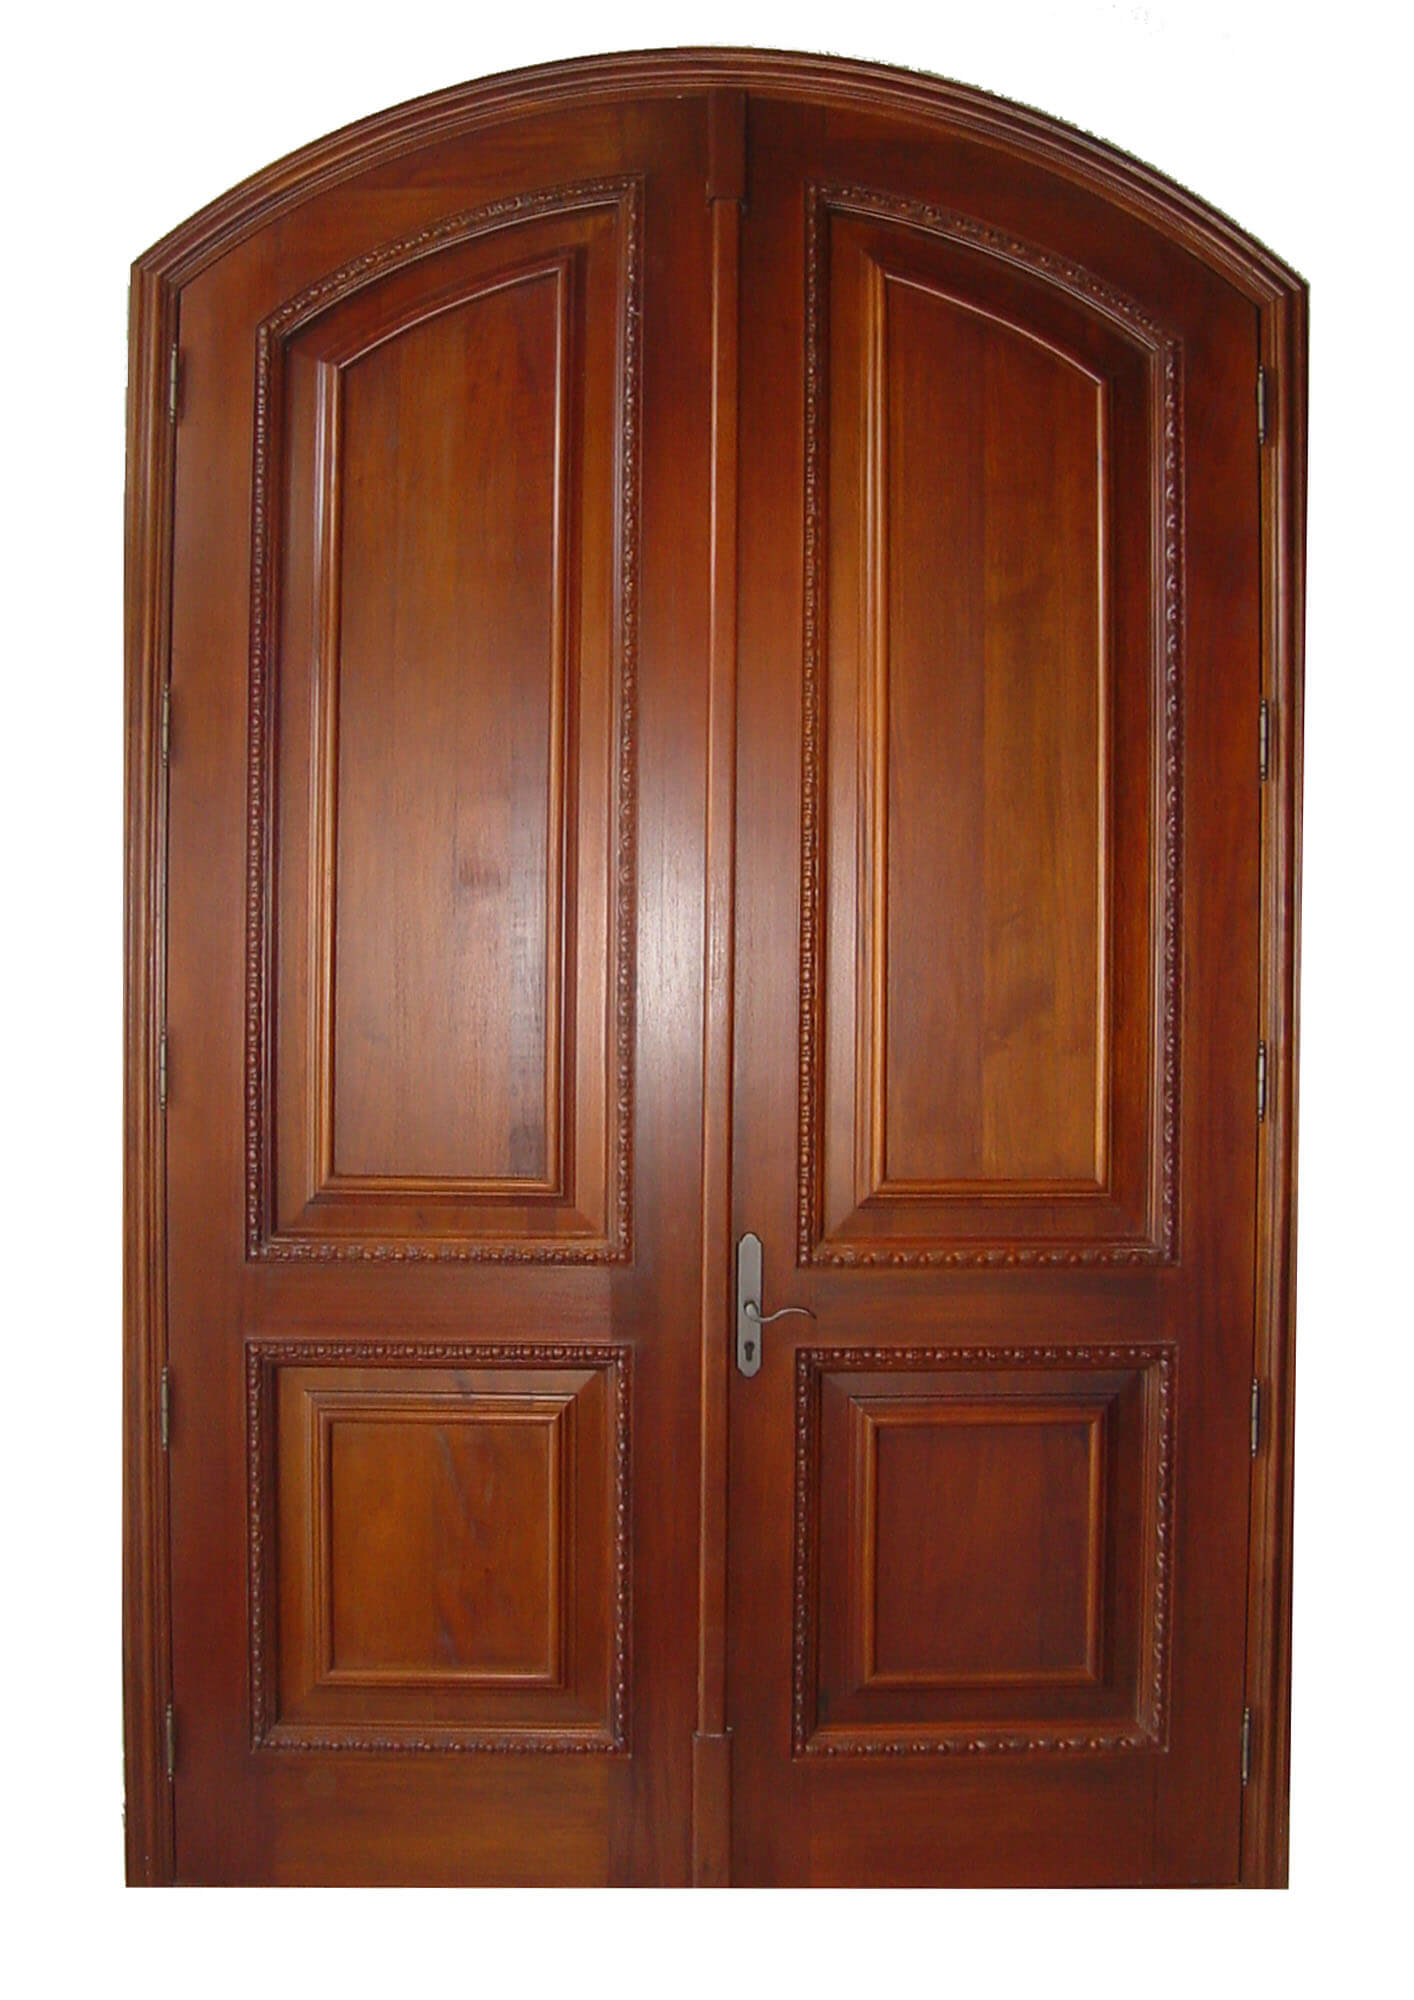 Conch Key Mahogany Exterior Doors